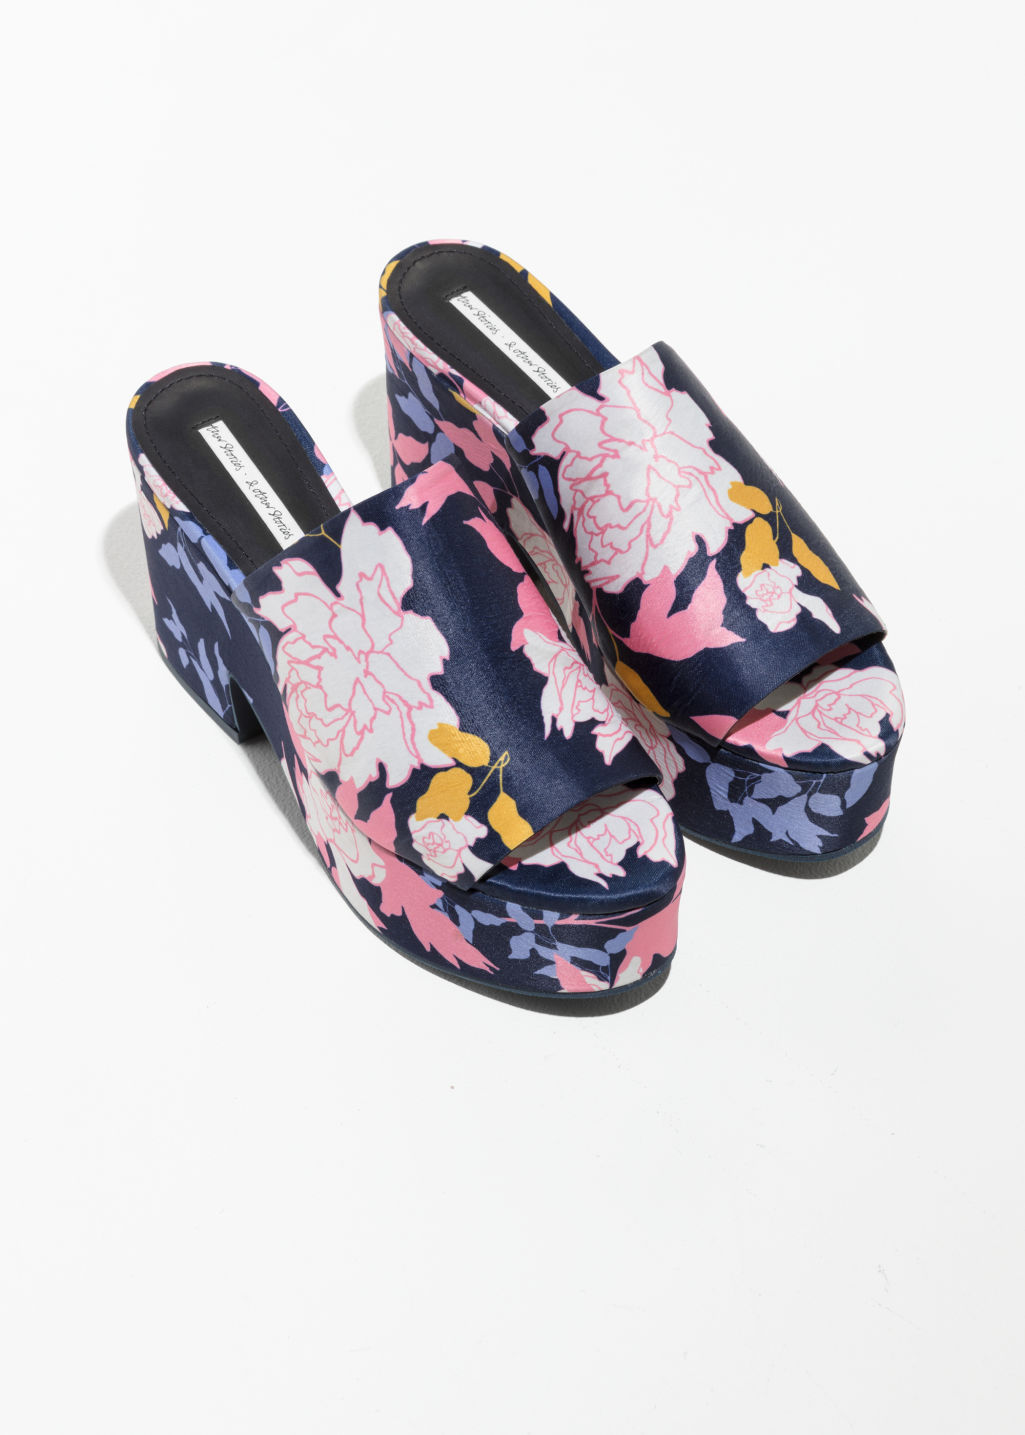 & OTHER STORIES Floral Print Platforms